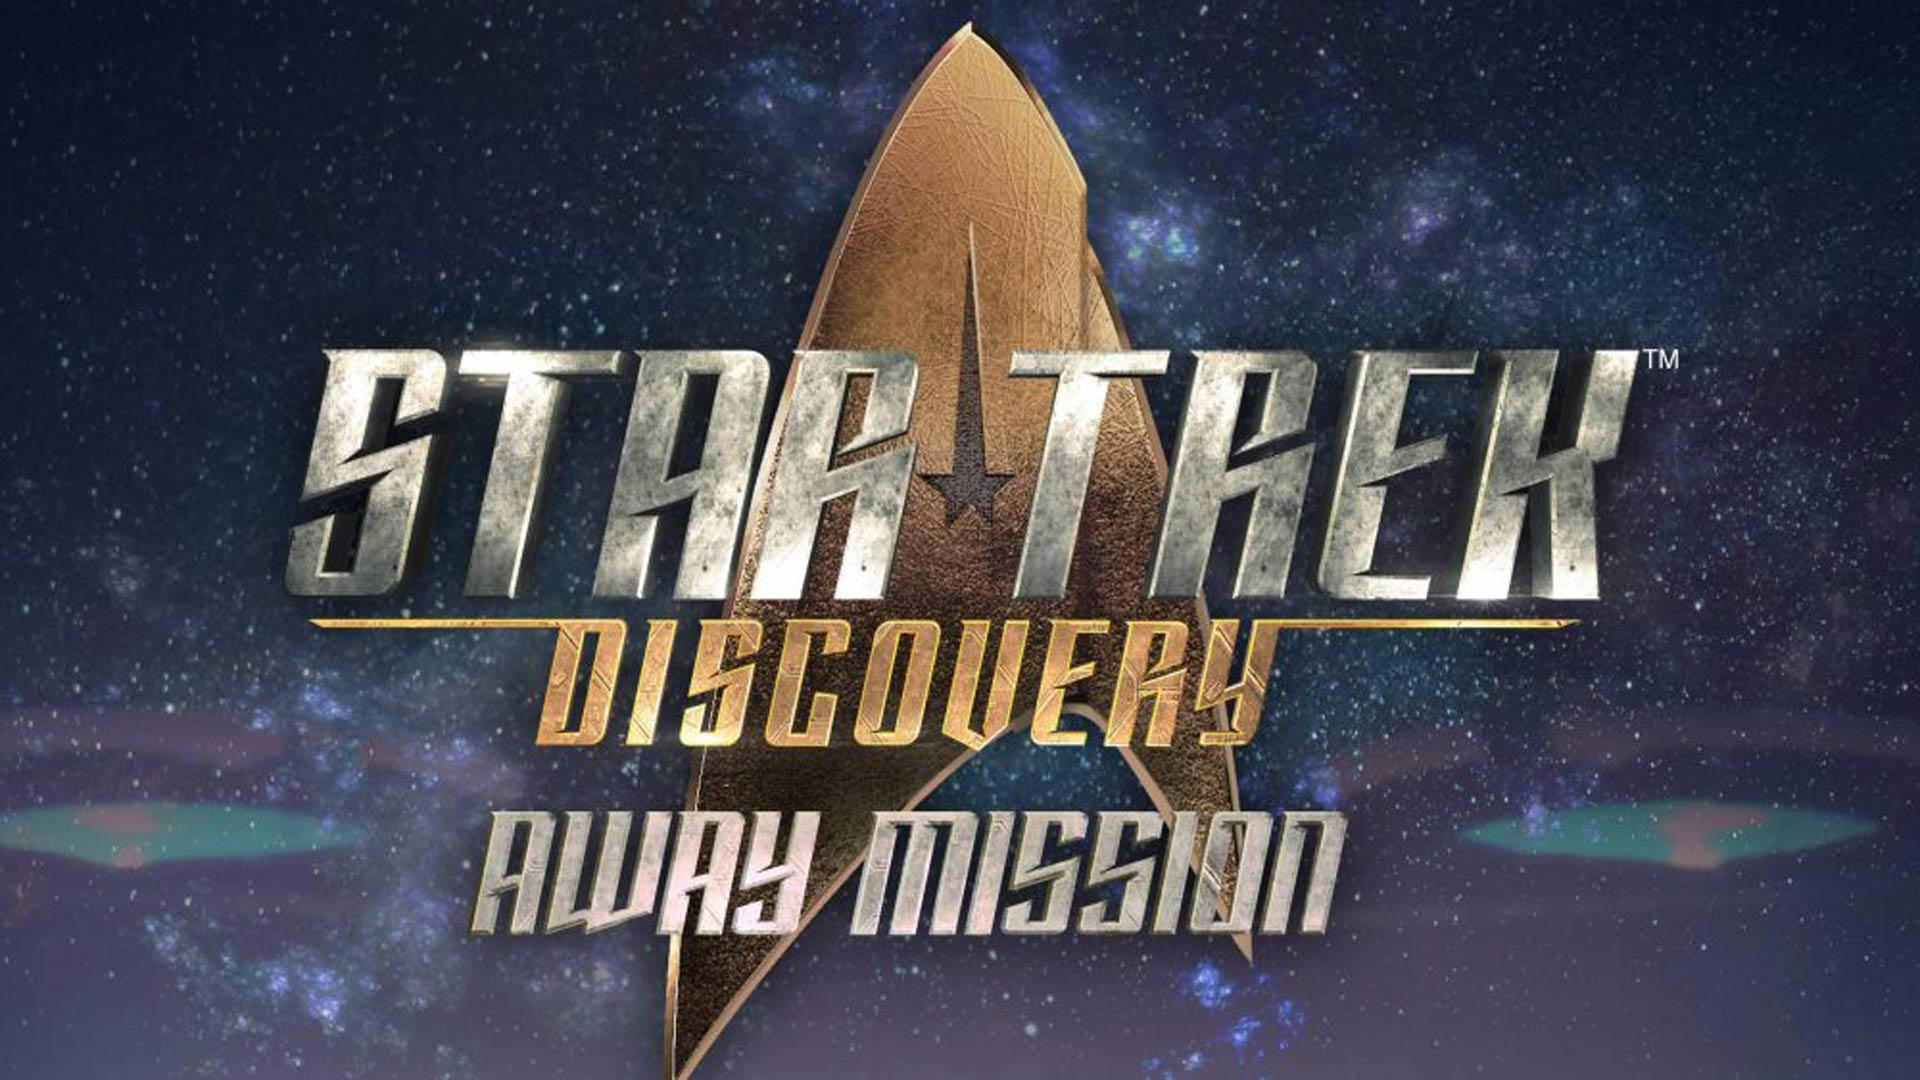 'Star Trek: Away Mission' Multiplayer VR Game Coming to Sandbox VR This Fall – Road to VR